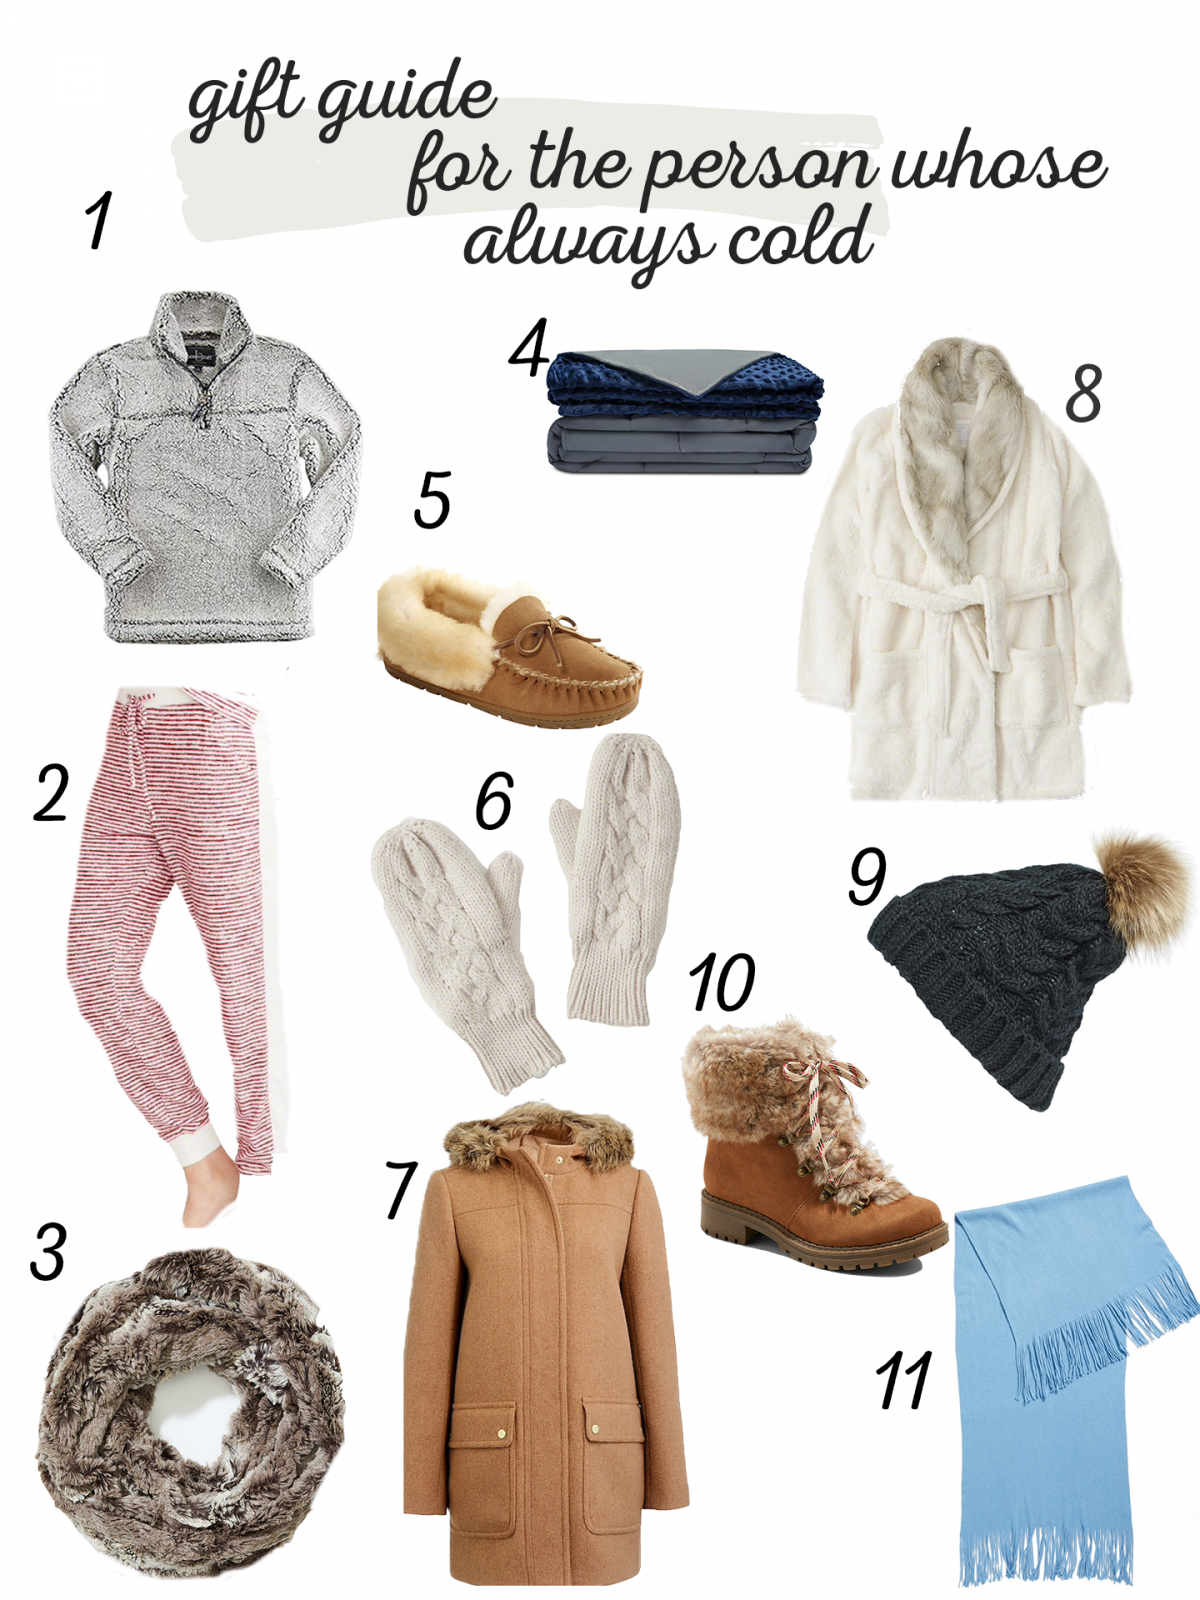 gift ideas for the person whose always cold